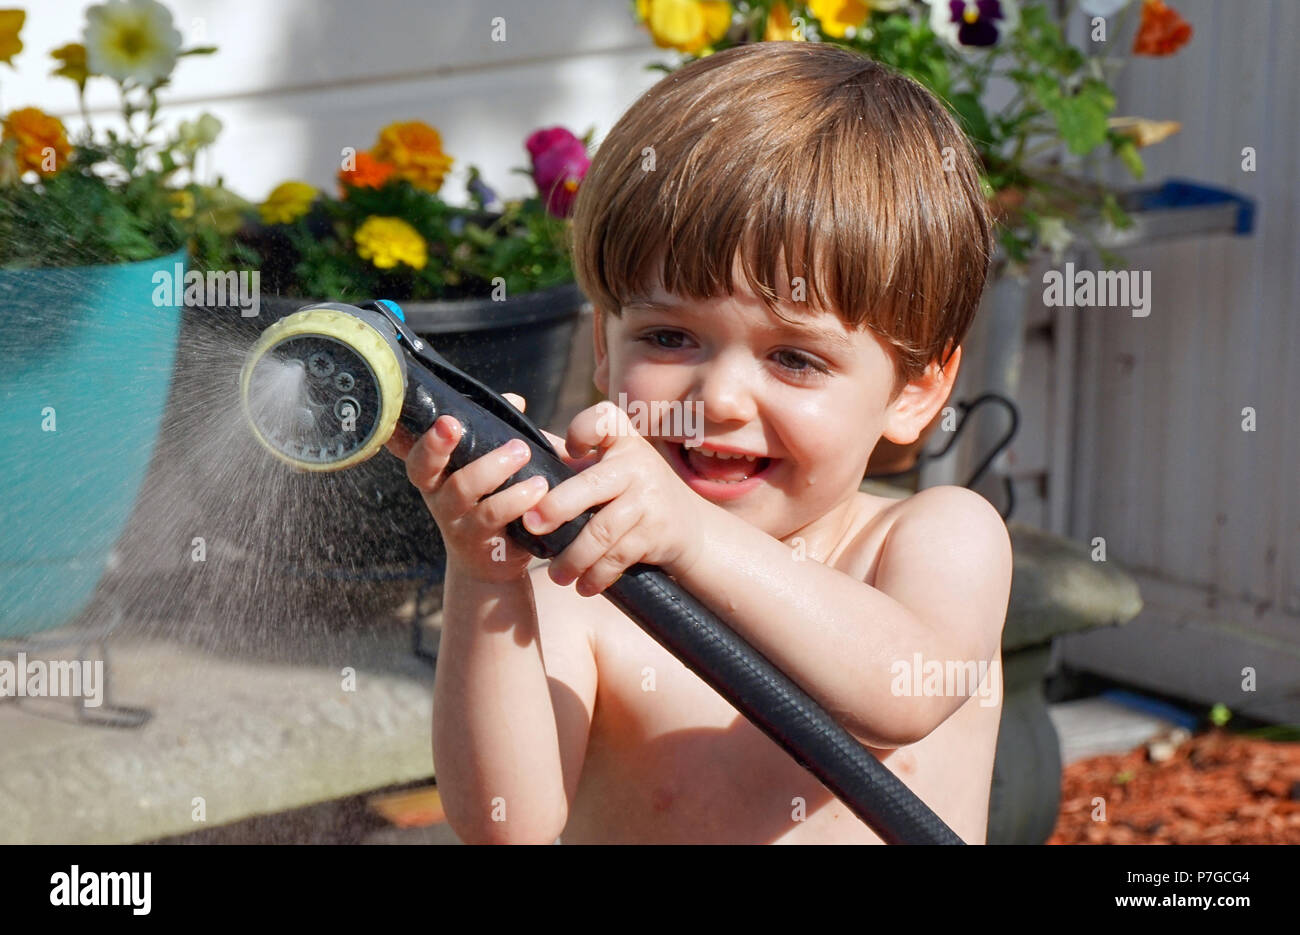 Montreal, Canada, July 2, 2018.Young three-old boy having fun with a garden hose during a heat wave.Credit Mario Beauregard/Alamy Live News - Stock Image